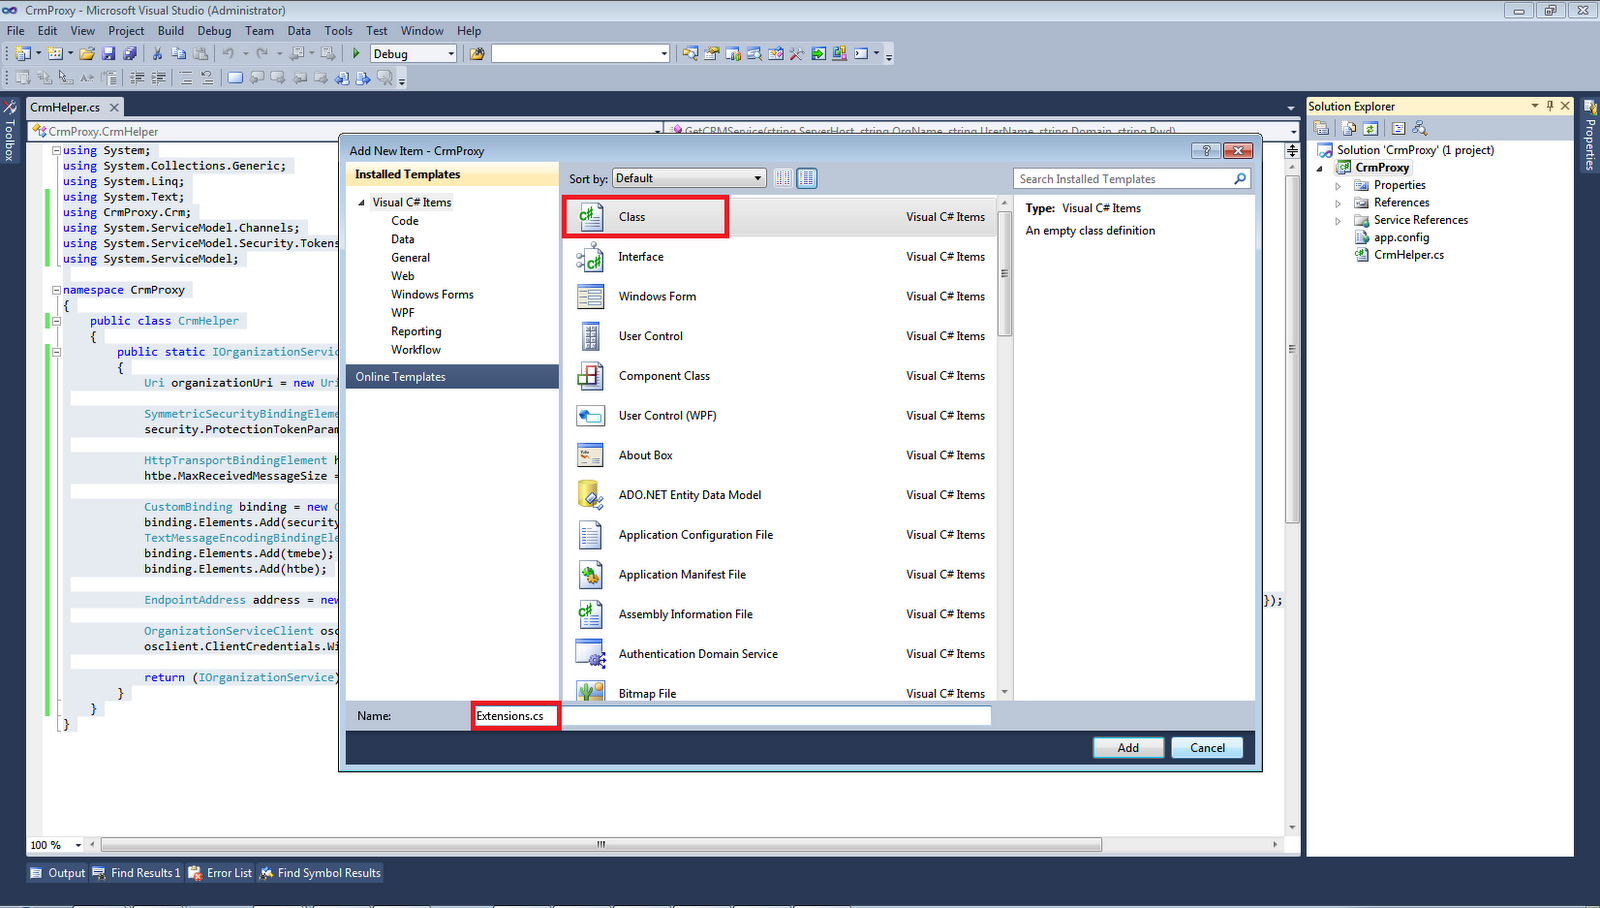 Integrating CRM 2011 using SQL Integration Services (SSIS) – Andrew